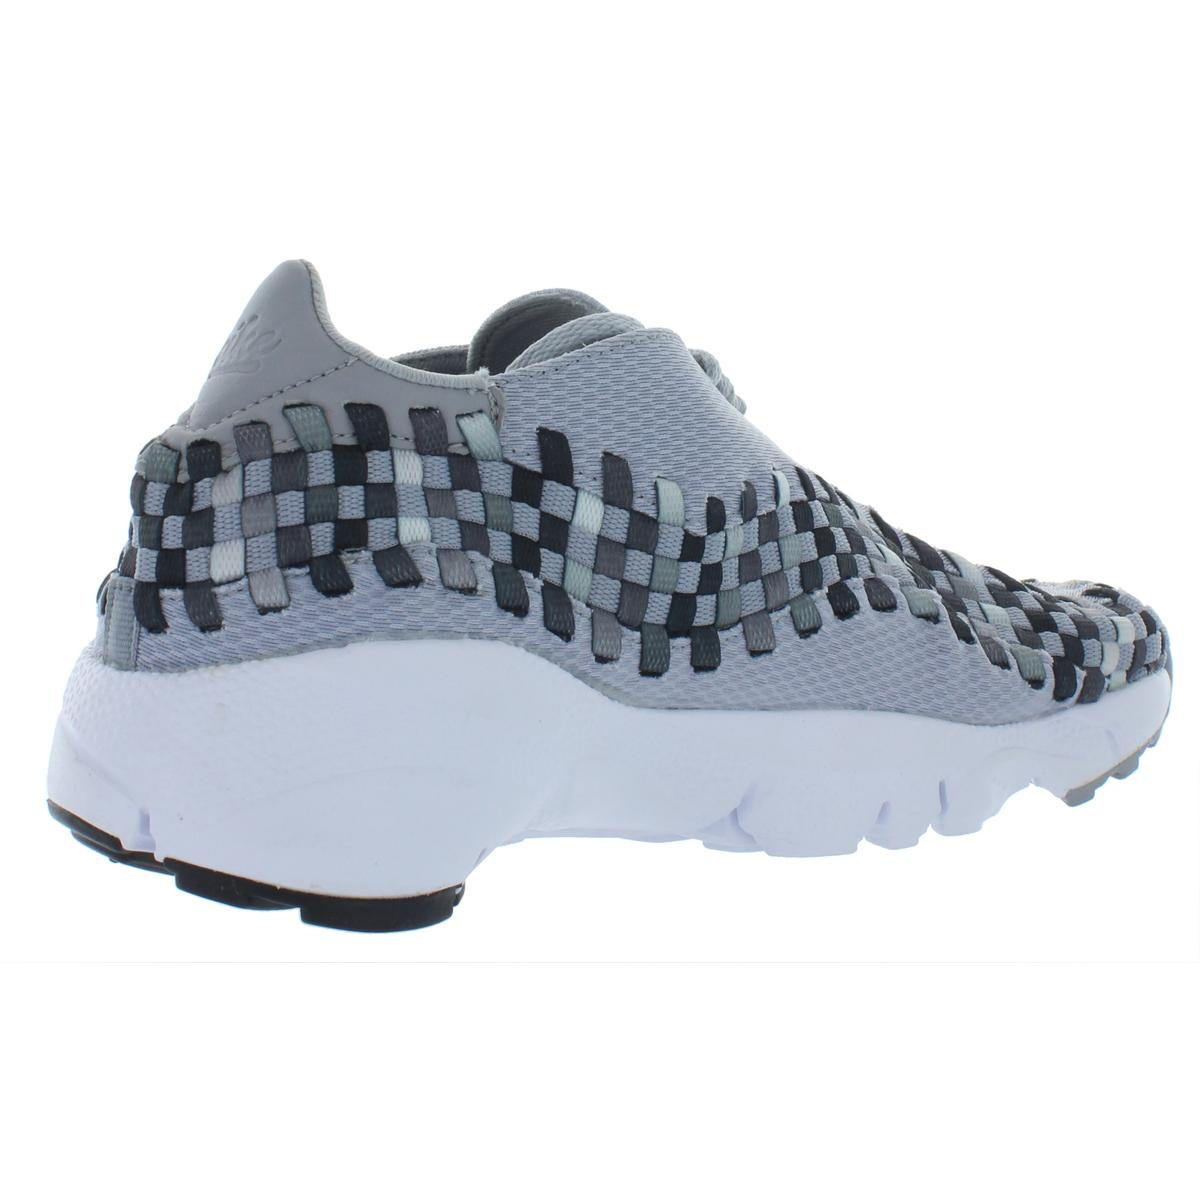 Nike-Mens-Air-Footscape-Woven-Low-Top-Lifestyle-Fashion-Sneakers-Shoes-BHFO-3976 thumbnail 10